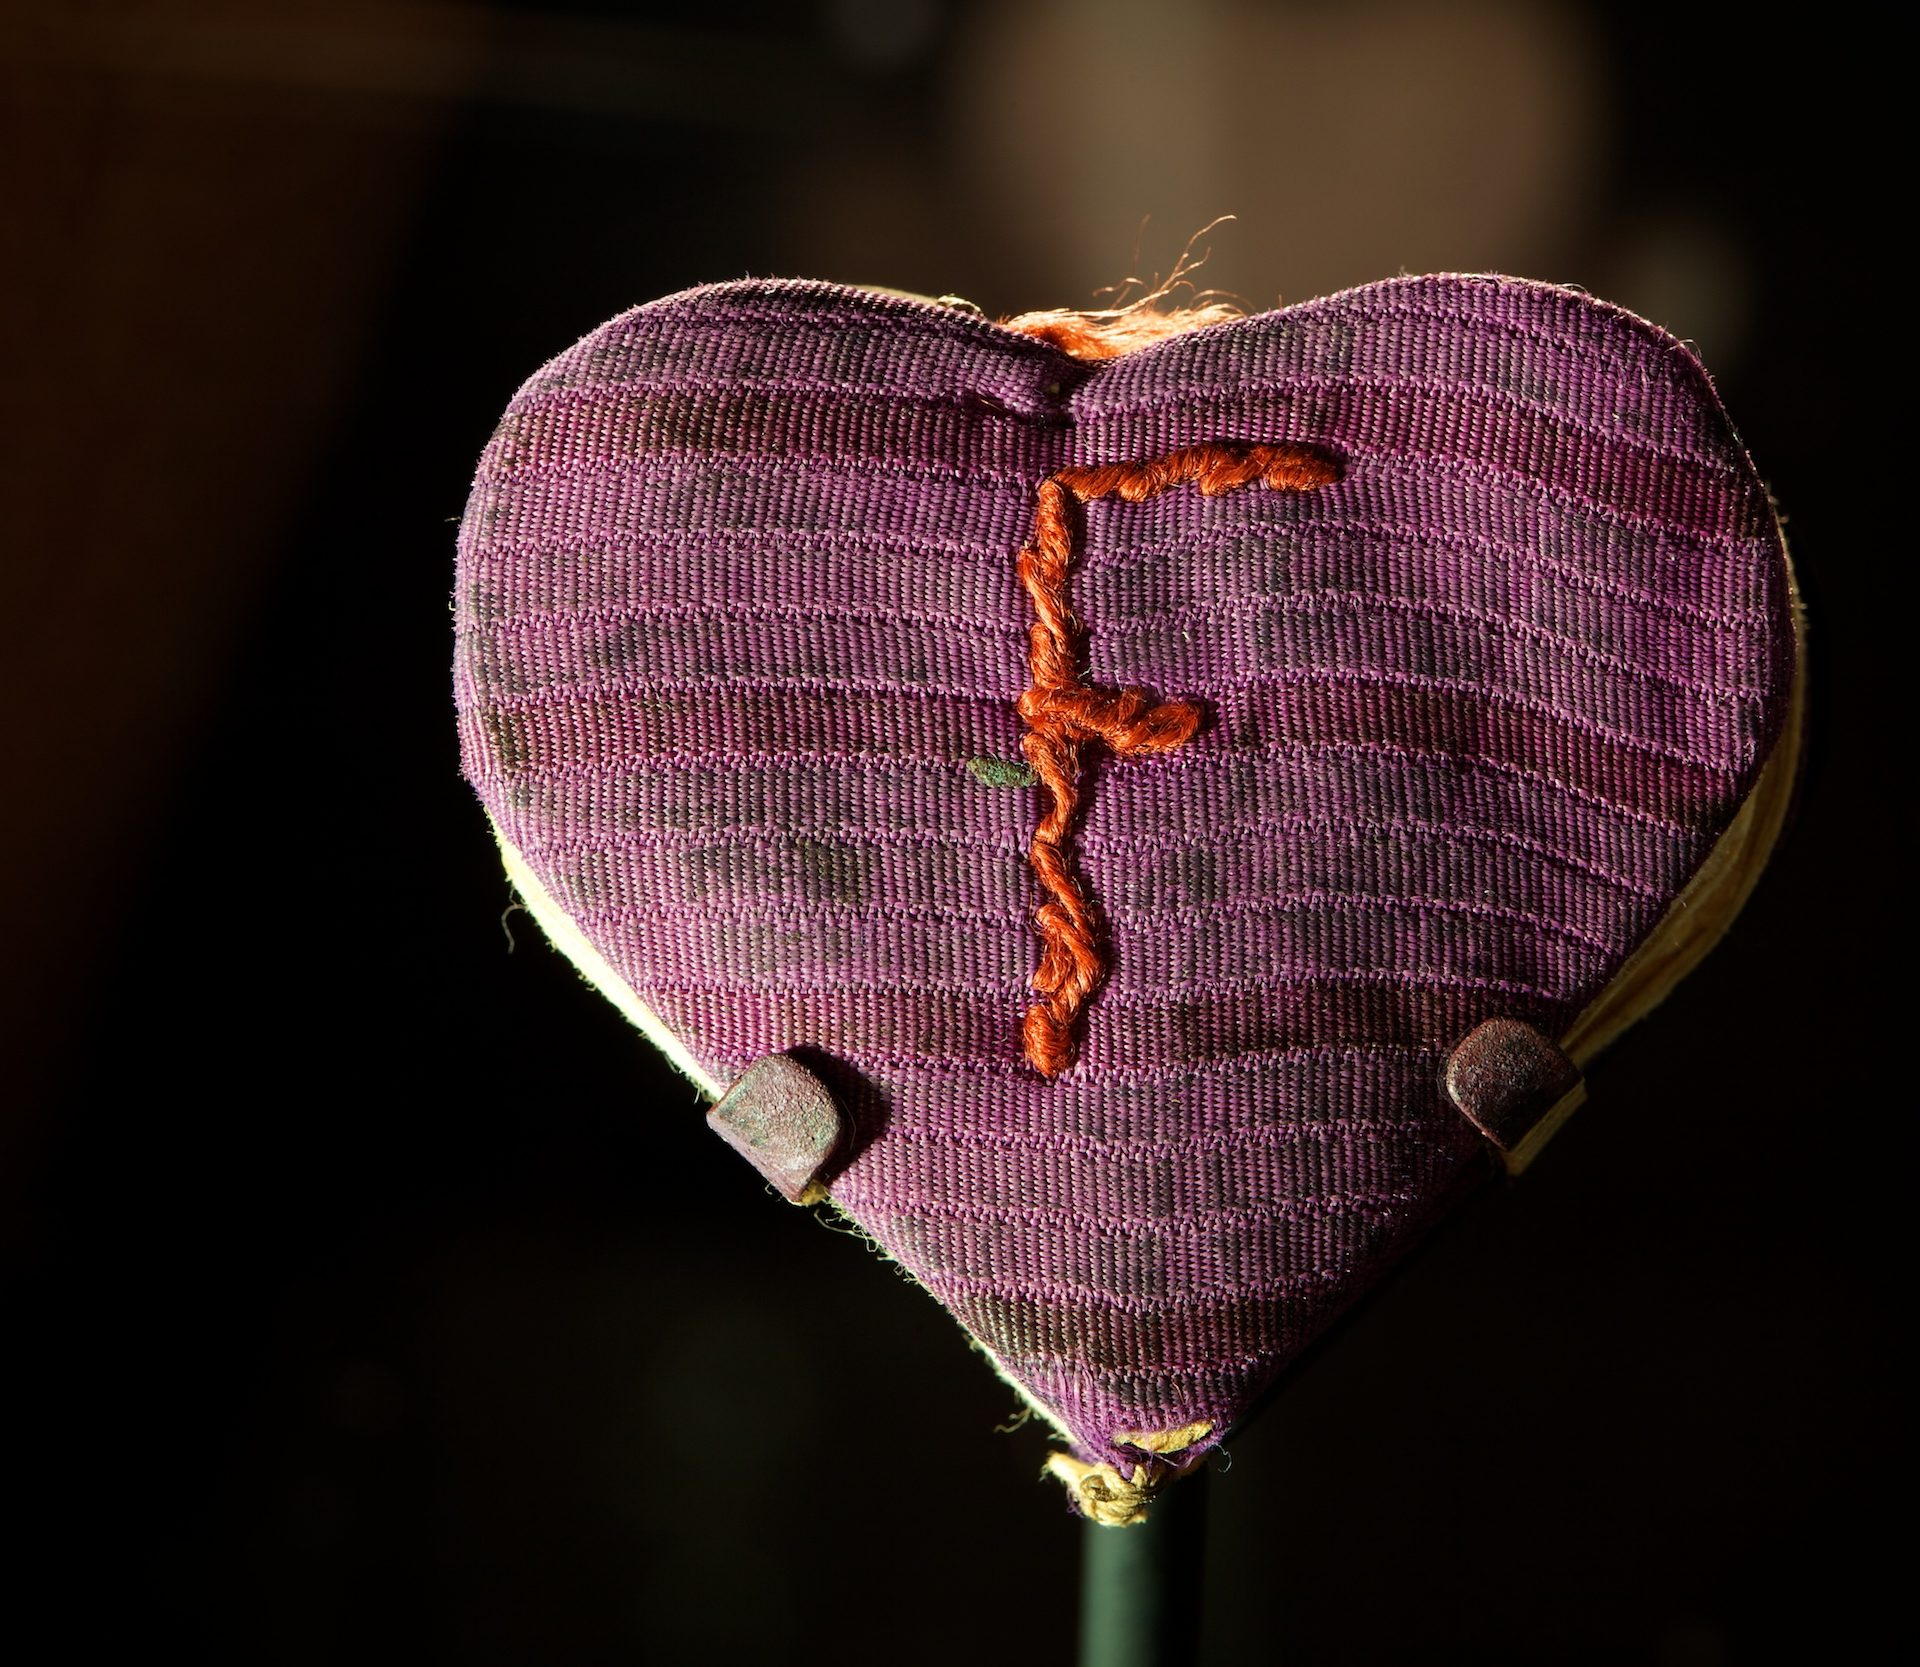 This heart-shaped booklet is a birthday card given to Fania Fainer on December 12, 1944, when she turned 20-years-old in Auschwitz.